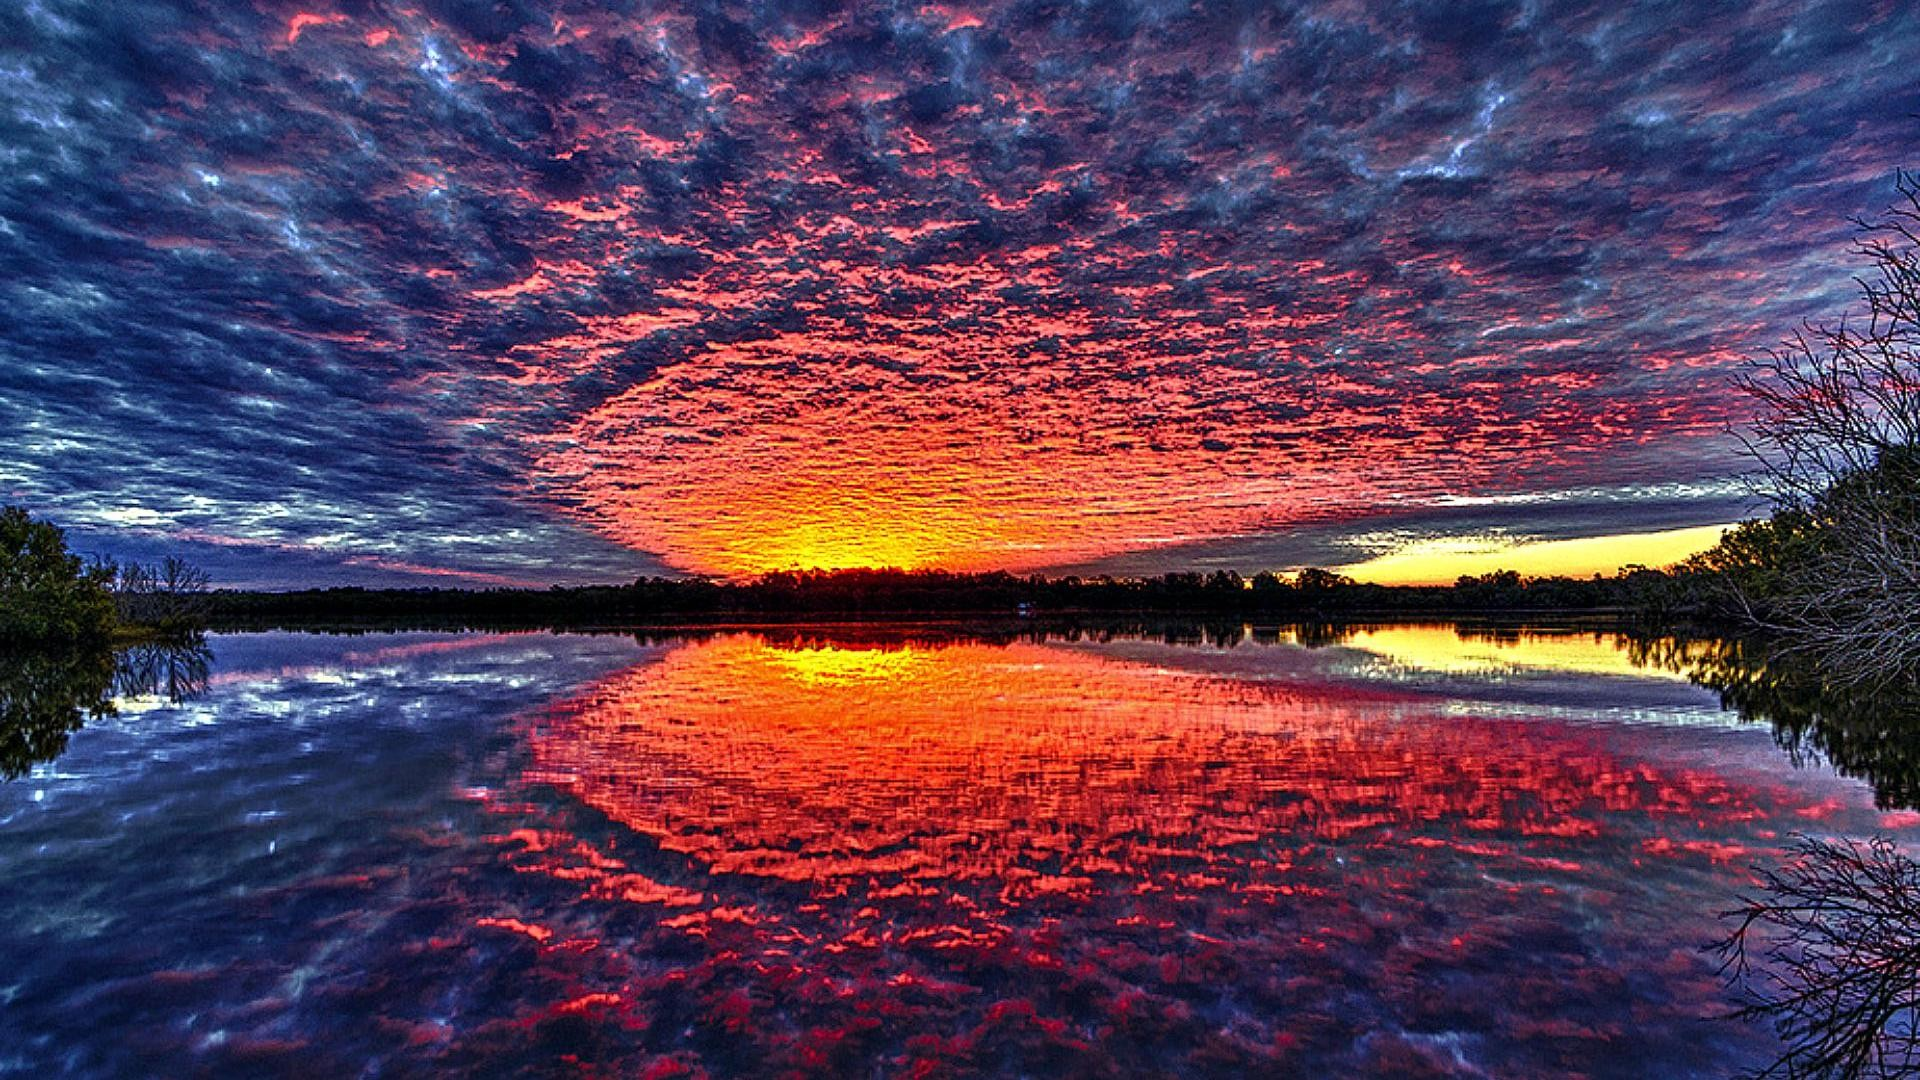 sunsets-stunning-sunset-reflection-hdr-lake-clouds-trees-high-quality-wallpaper.jpg